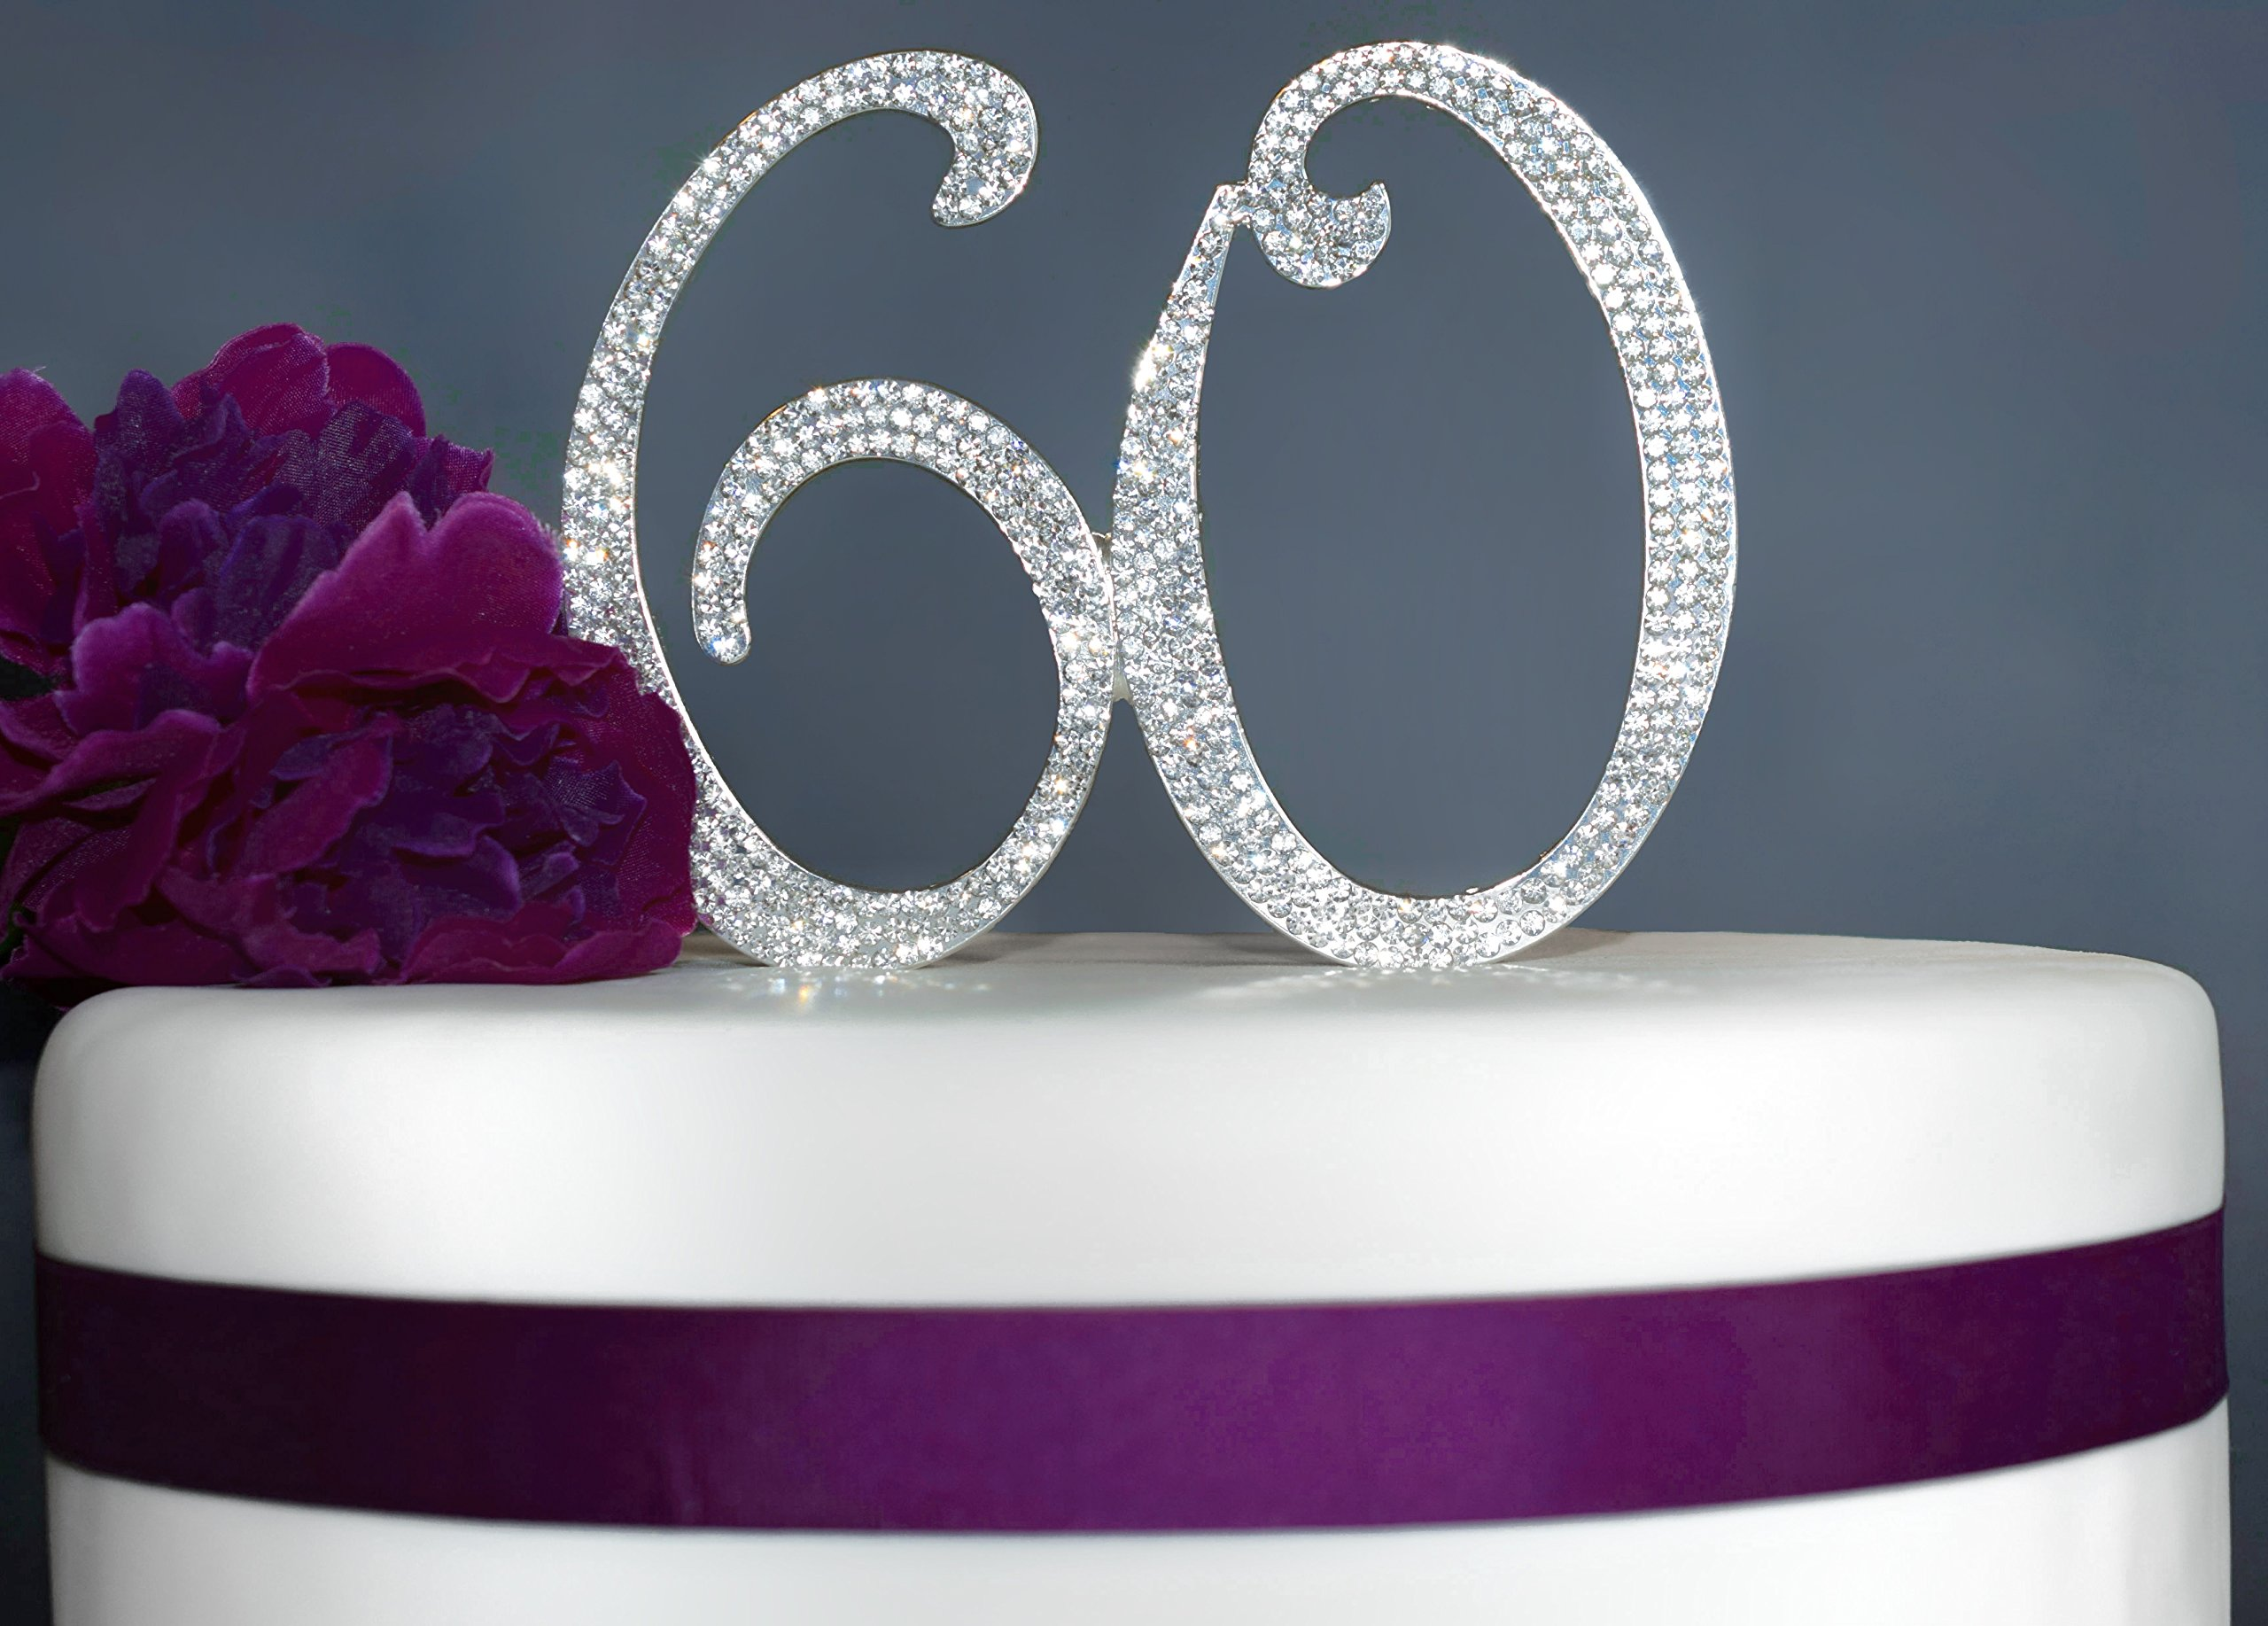 60 Rhinestone Birthday Cake Topper | Premium Sparkly Bling Crystal Diamond Rhinestone Gems | 60th Birthday or Anniversary Party Decoration Ideas | Perfect Keepsake (60 Silver)